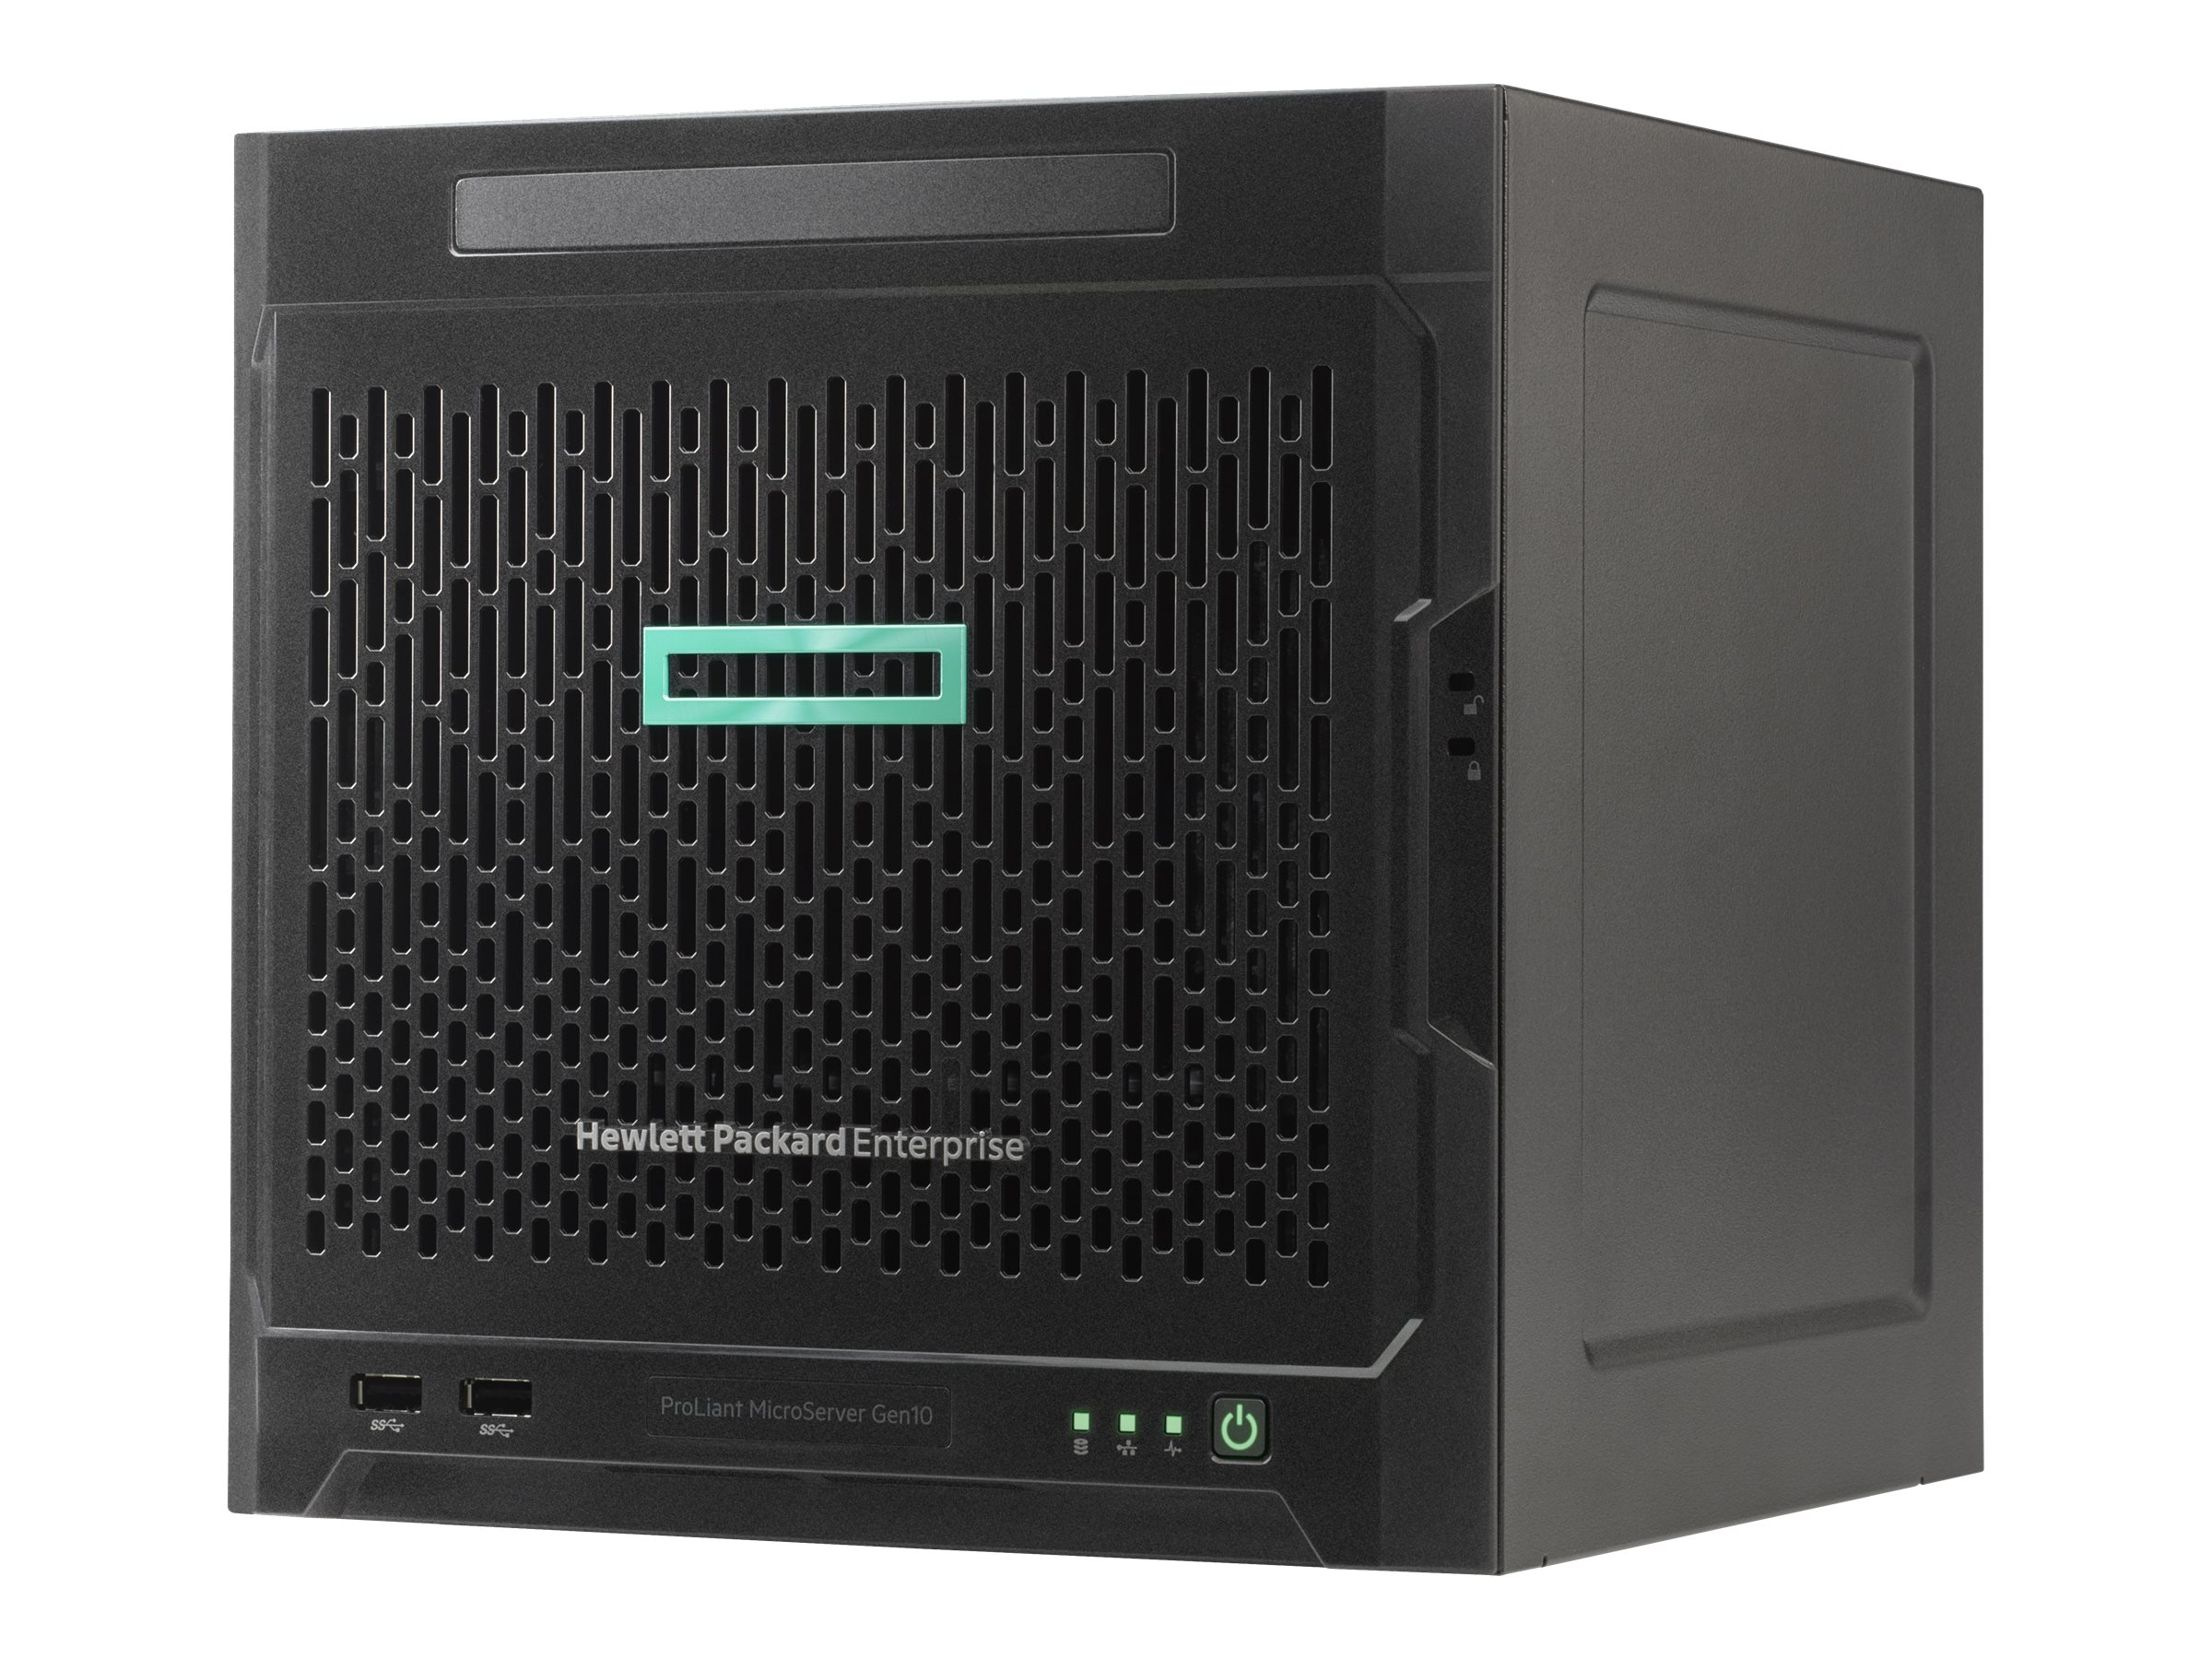 HPE ProLiant MicroServer Gen10 Entry - Server - Ultra-Micro-Tower - 1-Weg - 1 x Opteron X3216 / 1.6 GHz - RAM 8 GB